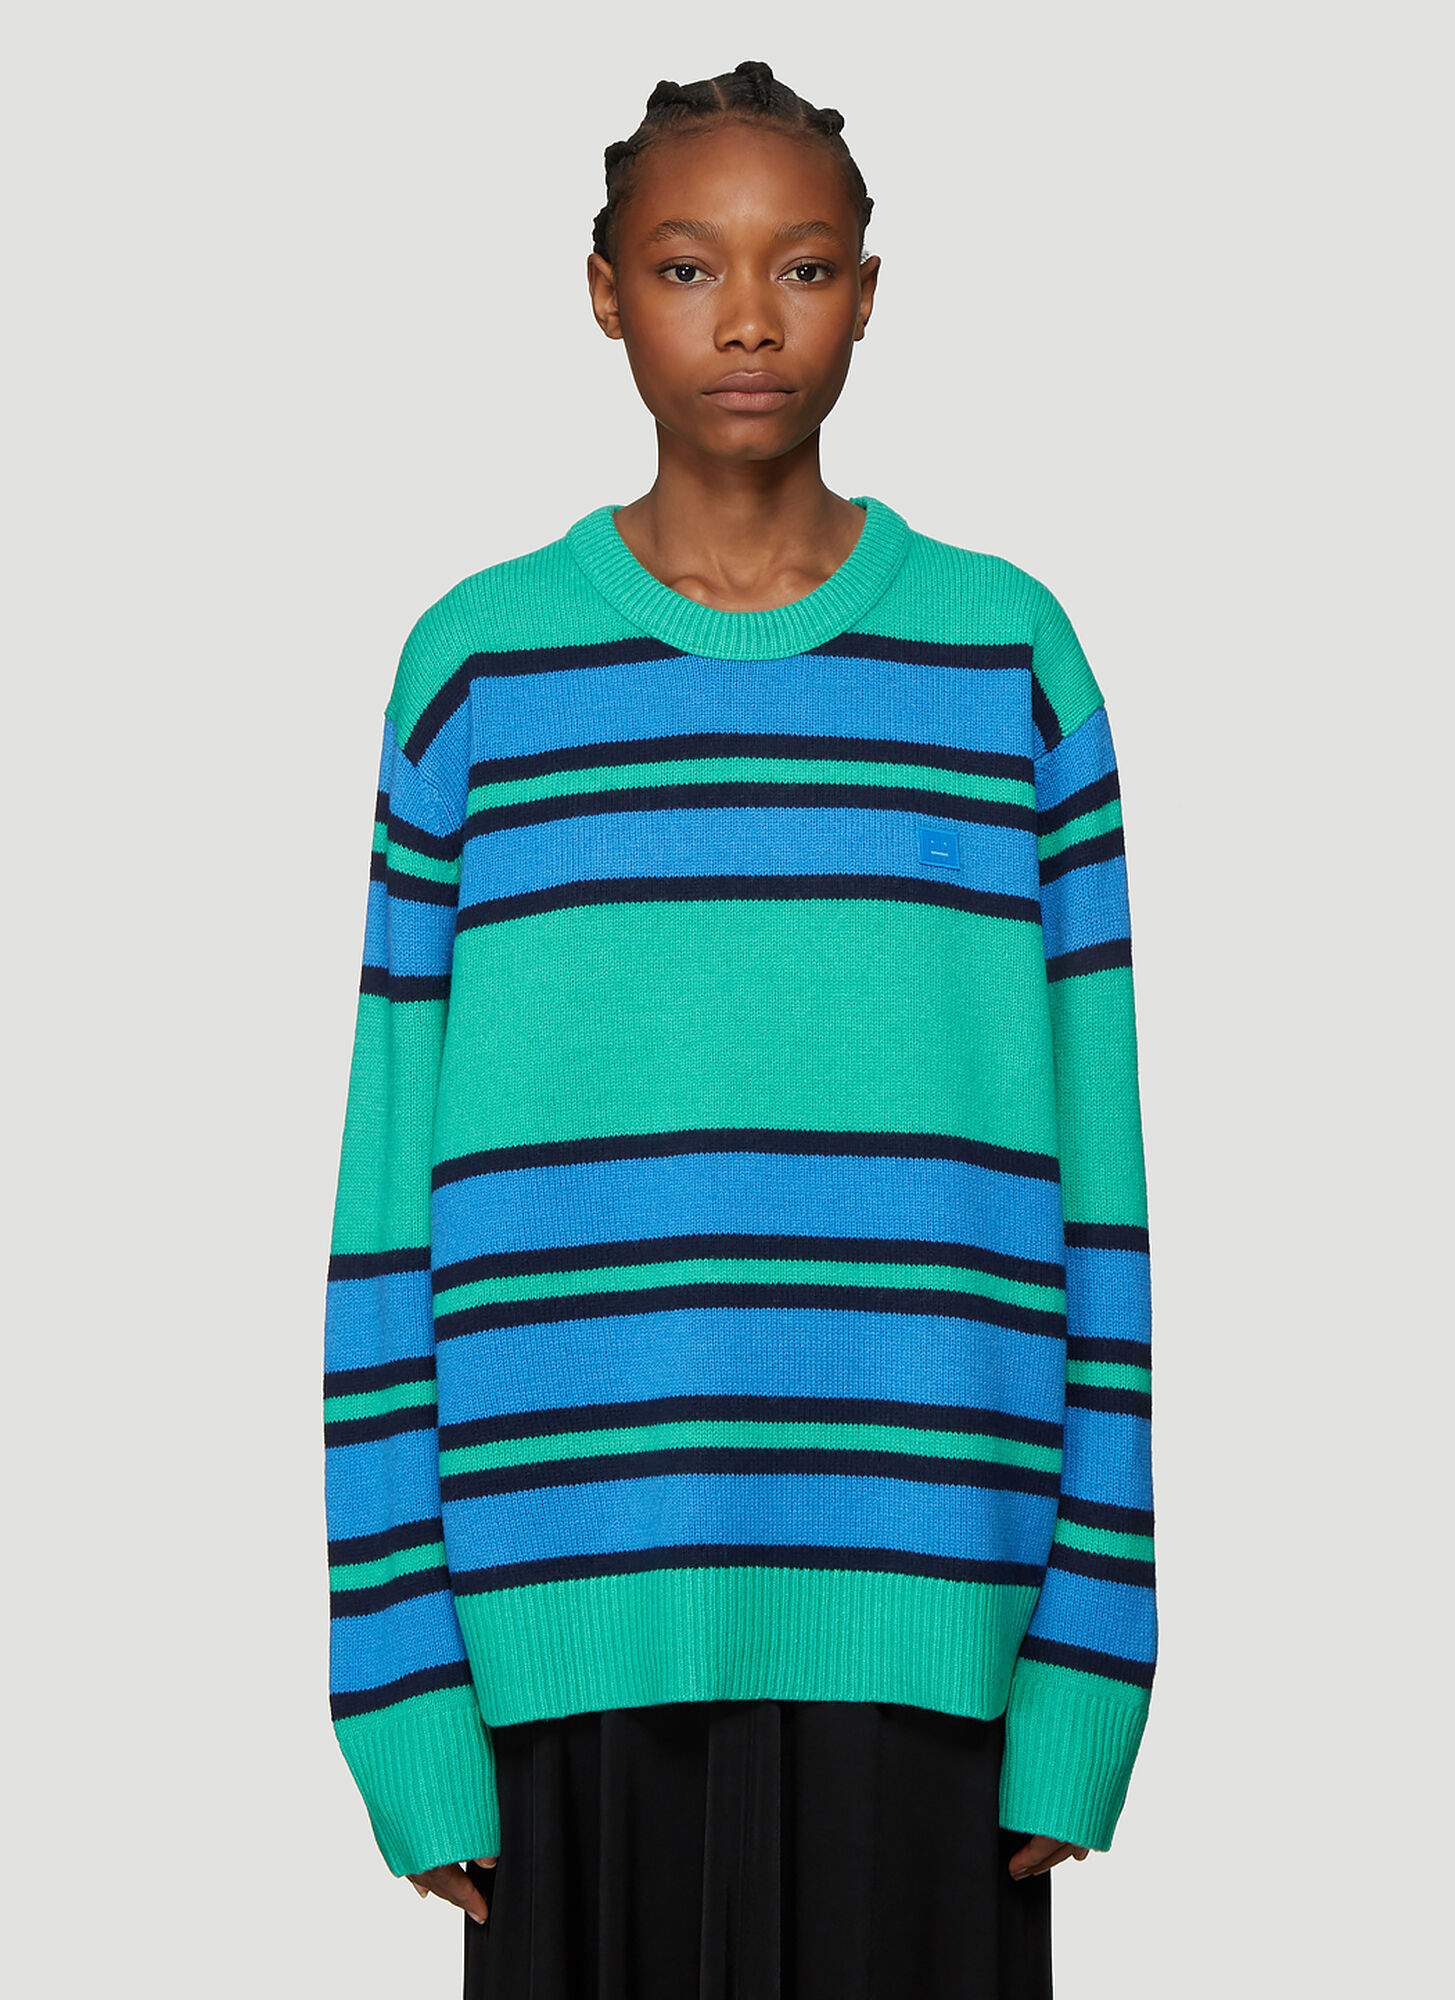 Acne Studios Nimah Striped Sweater in Green